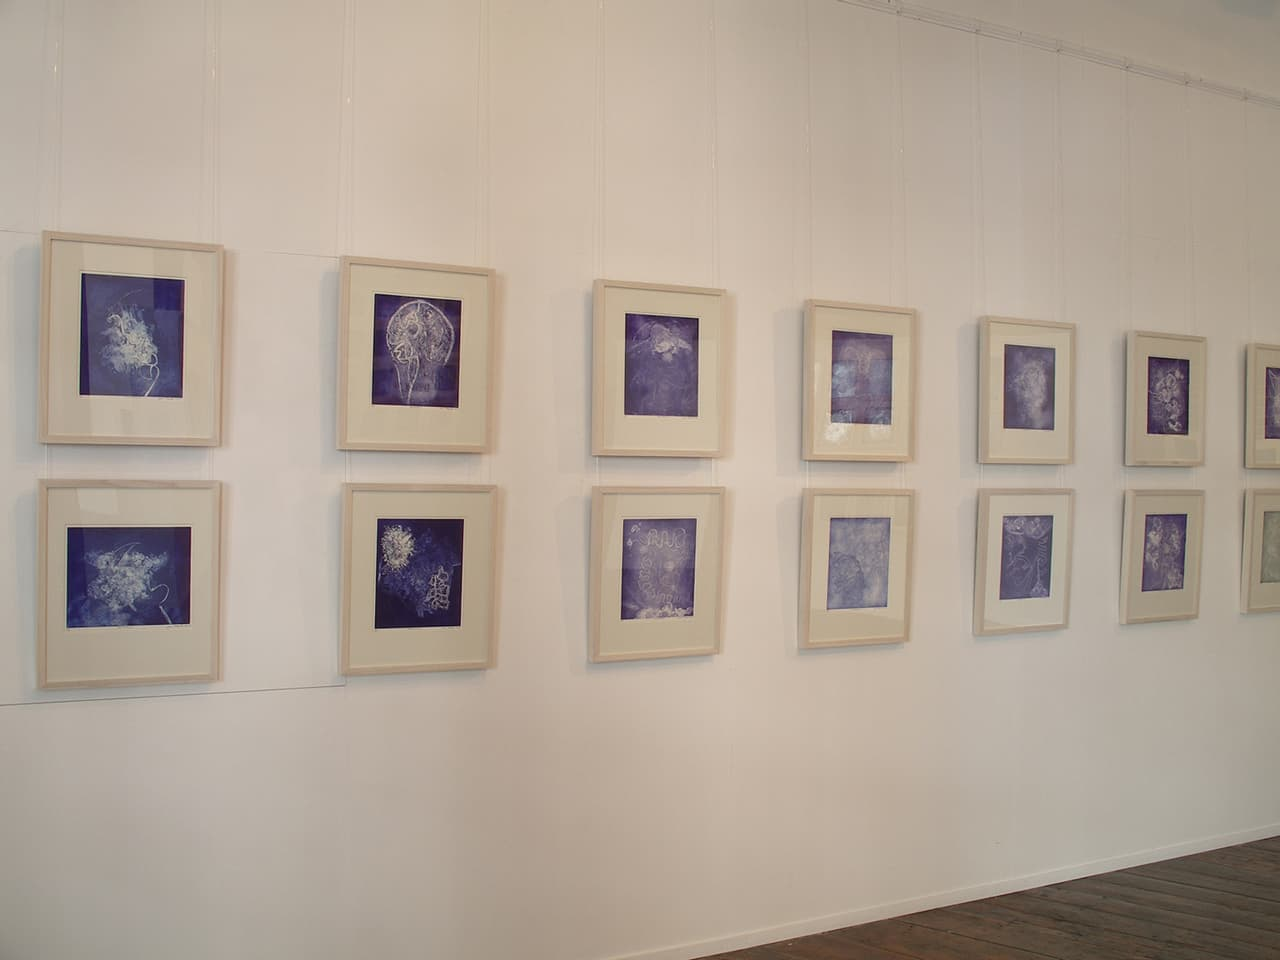 <strong>Brainscapes</strong>, installation of 30 etchings, Susan Aldworth, 2002. Photograph at Peninsula Arts by Jill Sheridan.